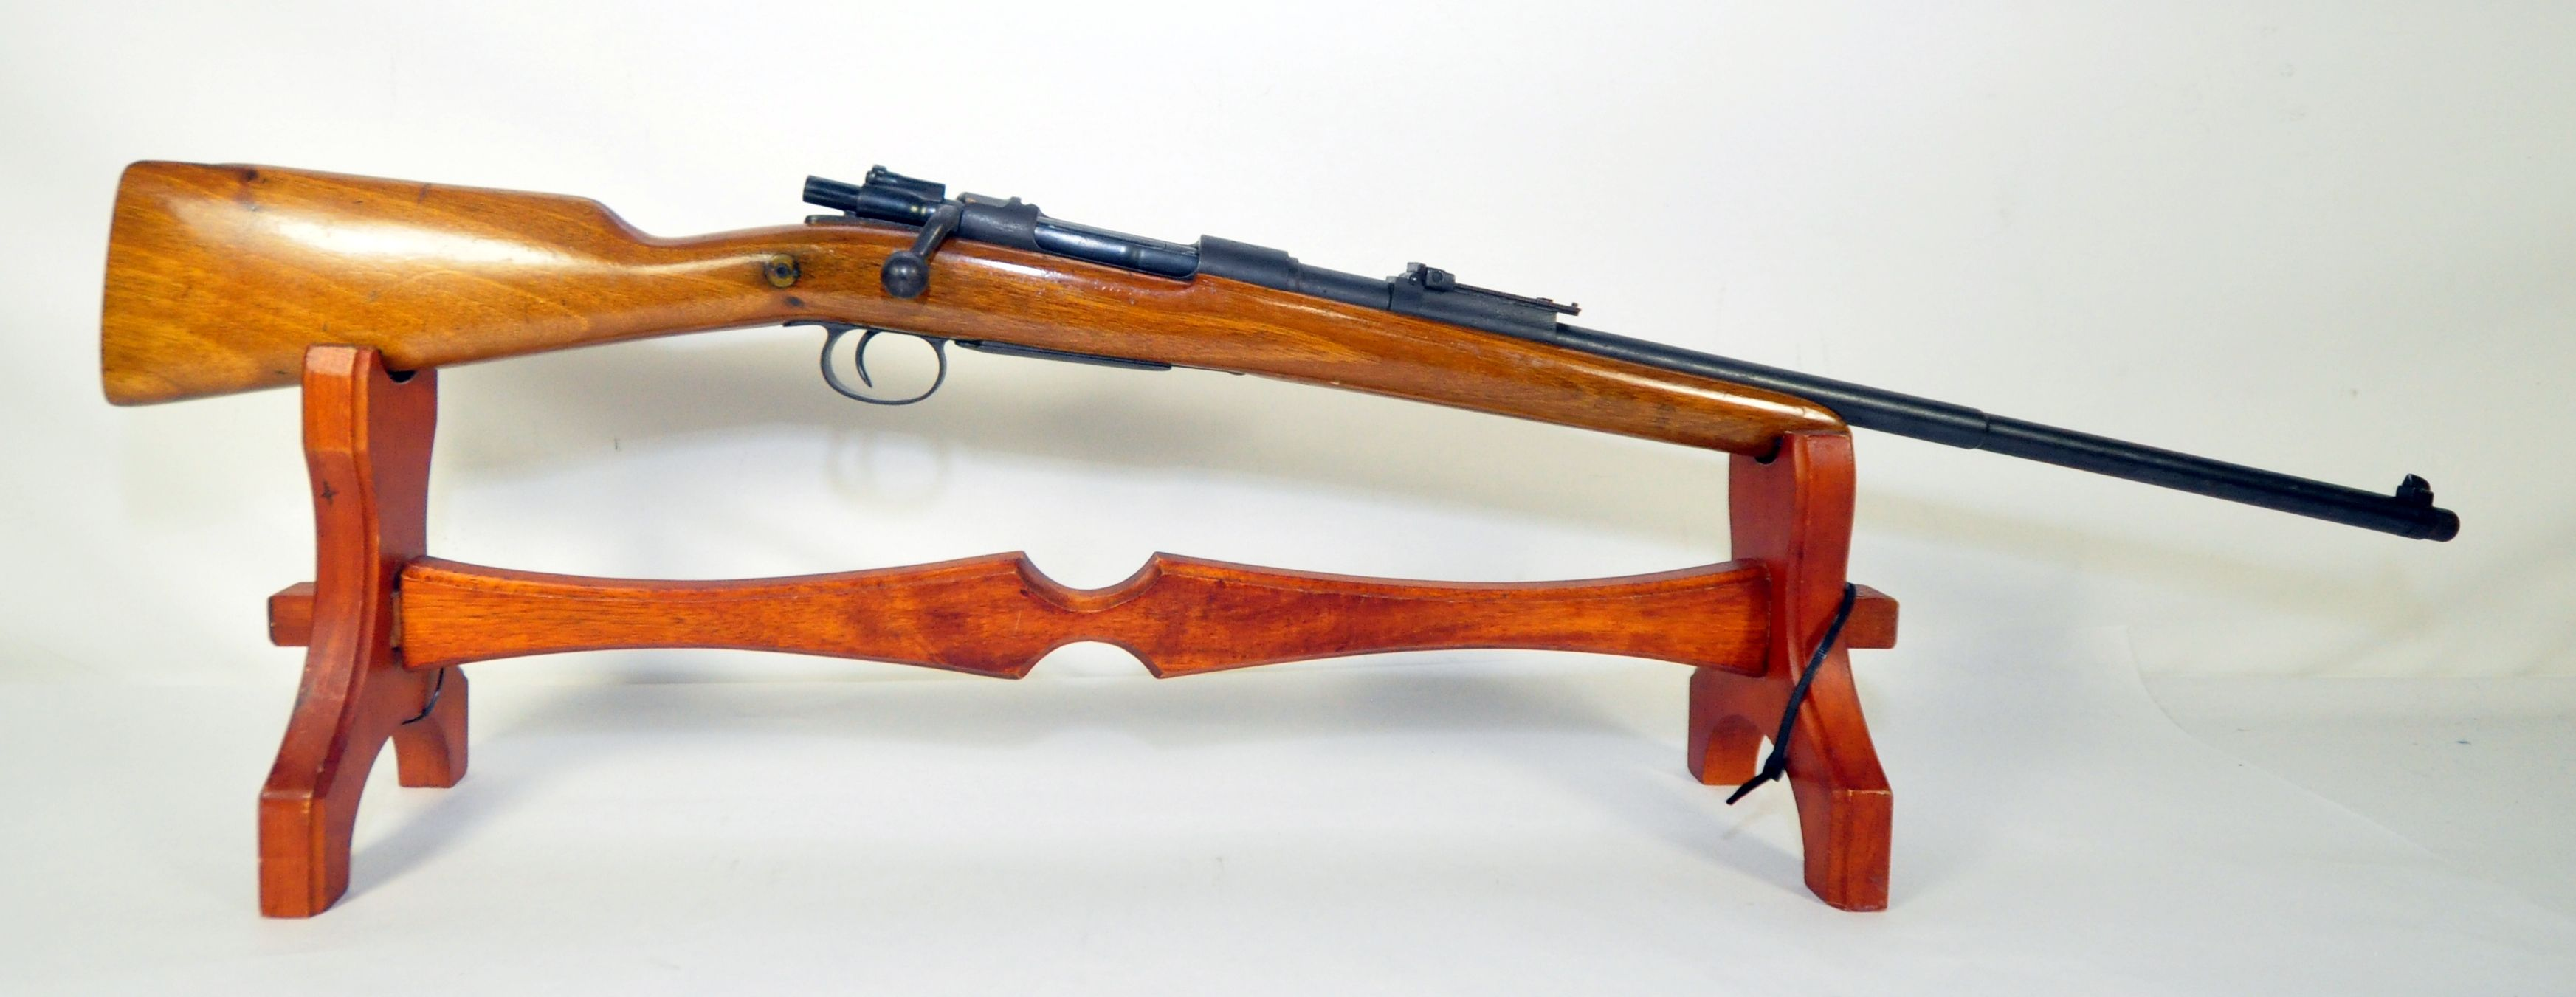 Fabrica de Armas Oviedo model 1893 (modified) 7x57mm This Spanish